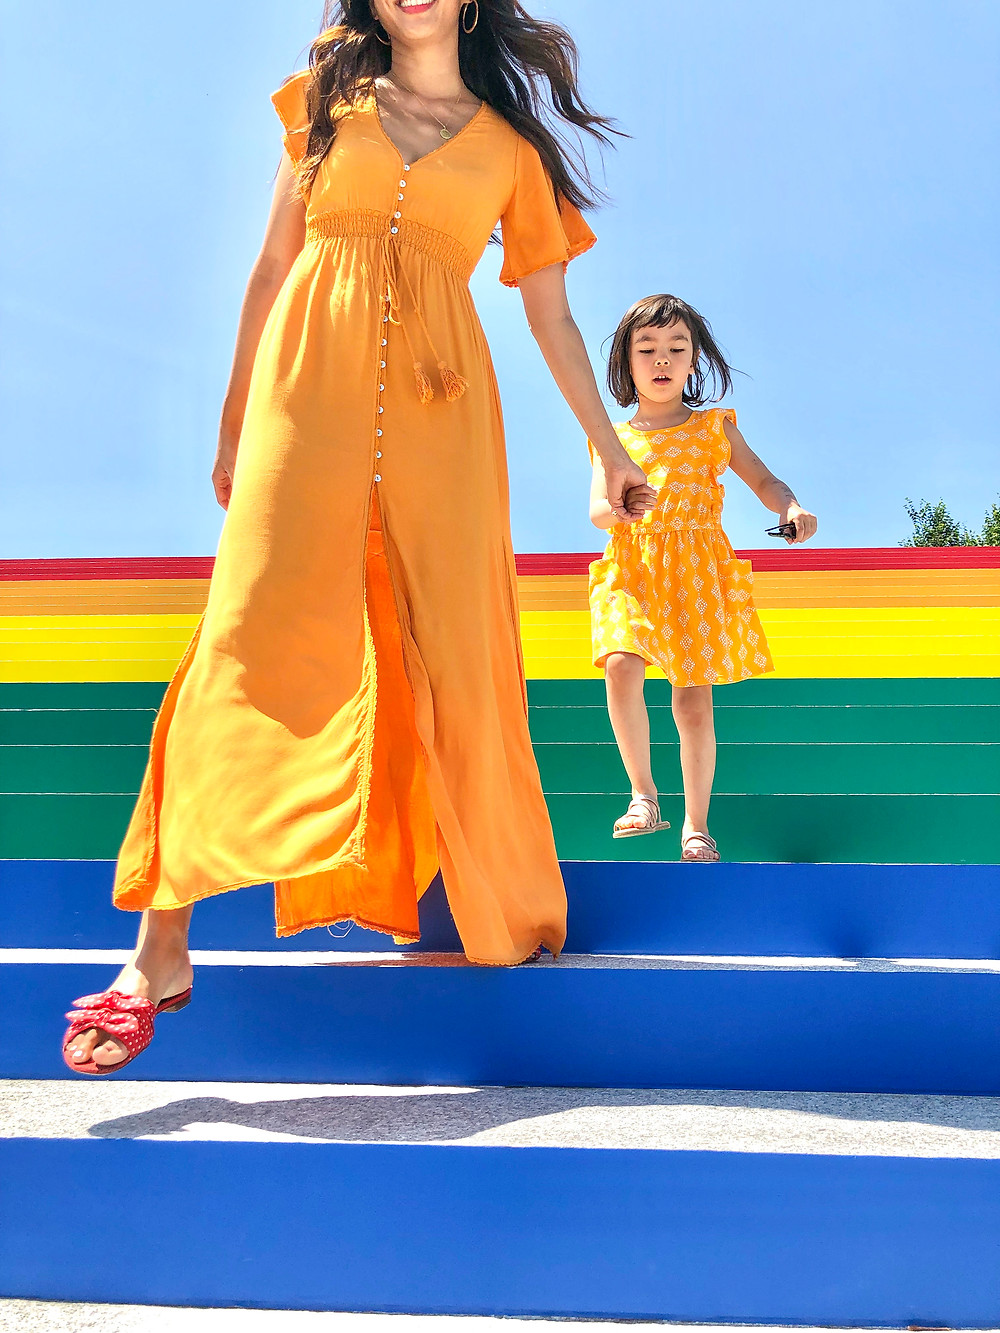 rainbow fashion, mommy and me fashion, world pride, Curious G and Me, rainbow art, rainbow art in NYC, Industry City, Theresa Rivera Design, Roosevelt Island, Four Freedoms Park